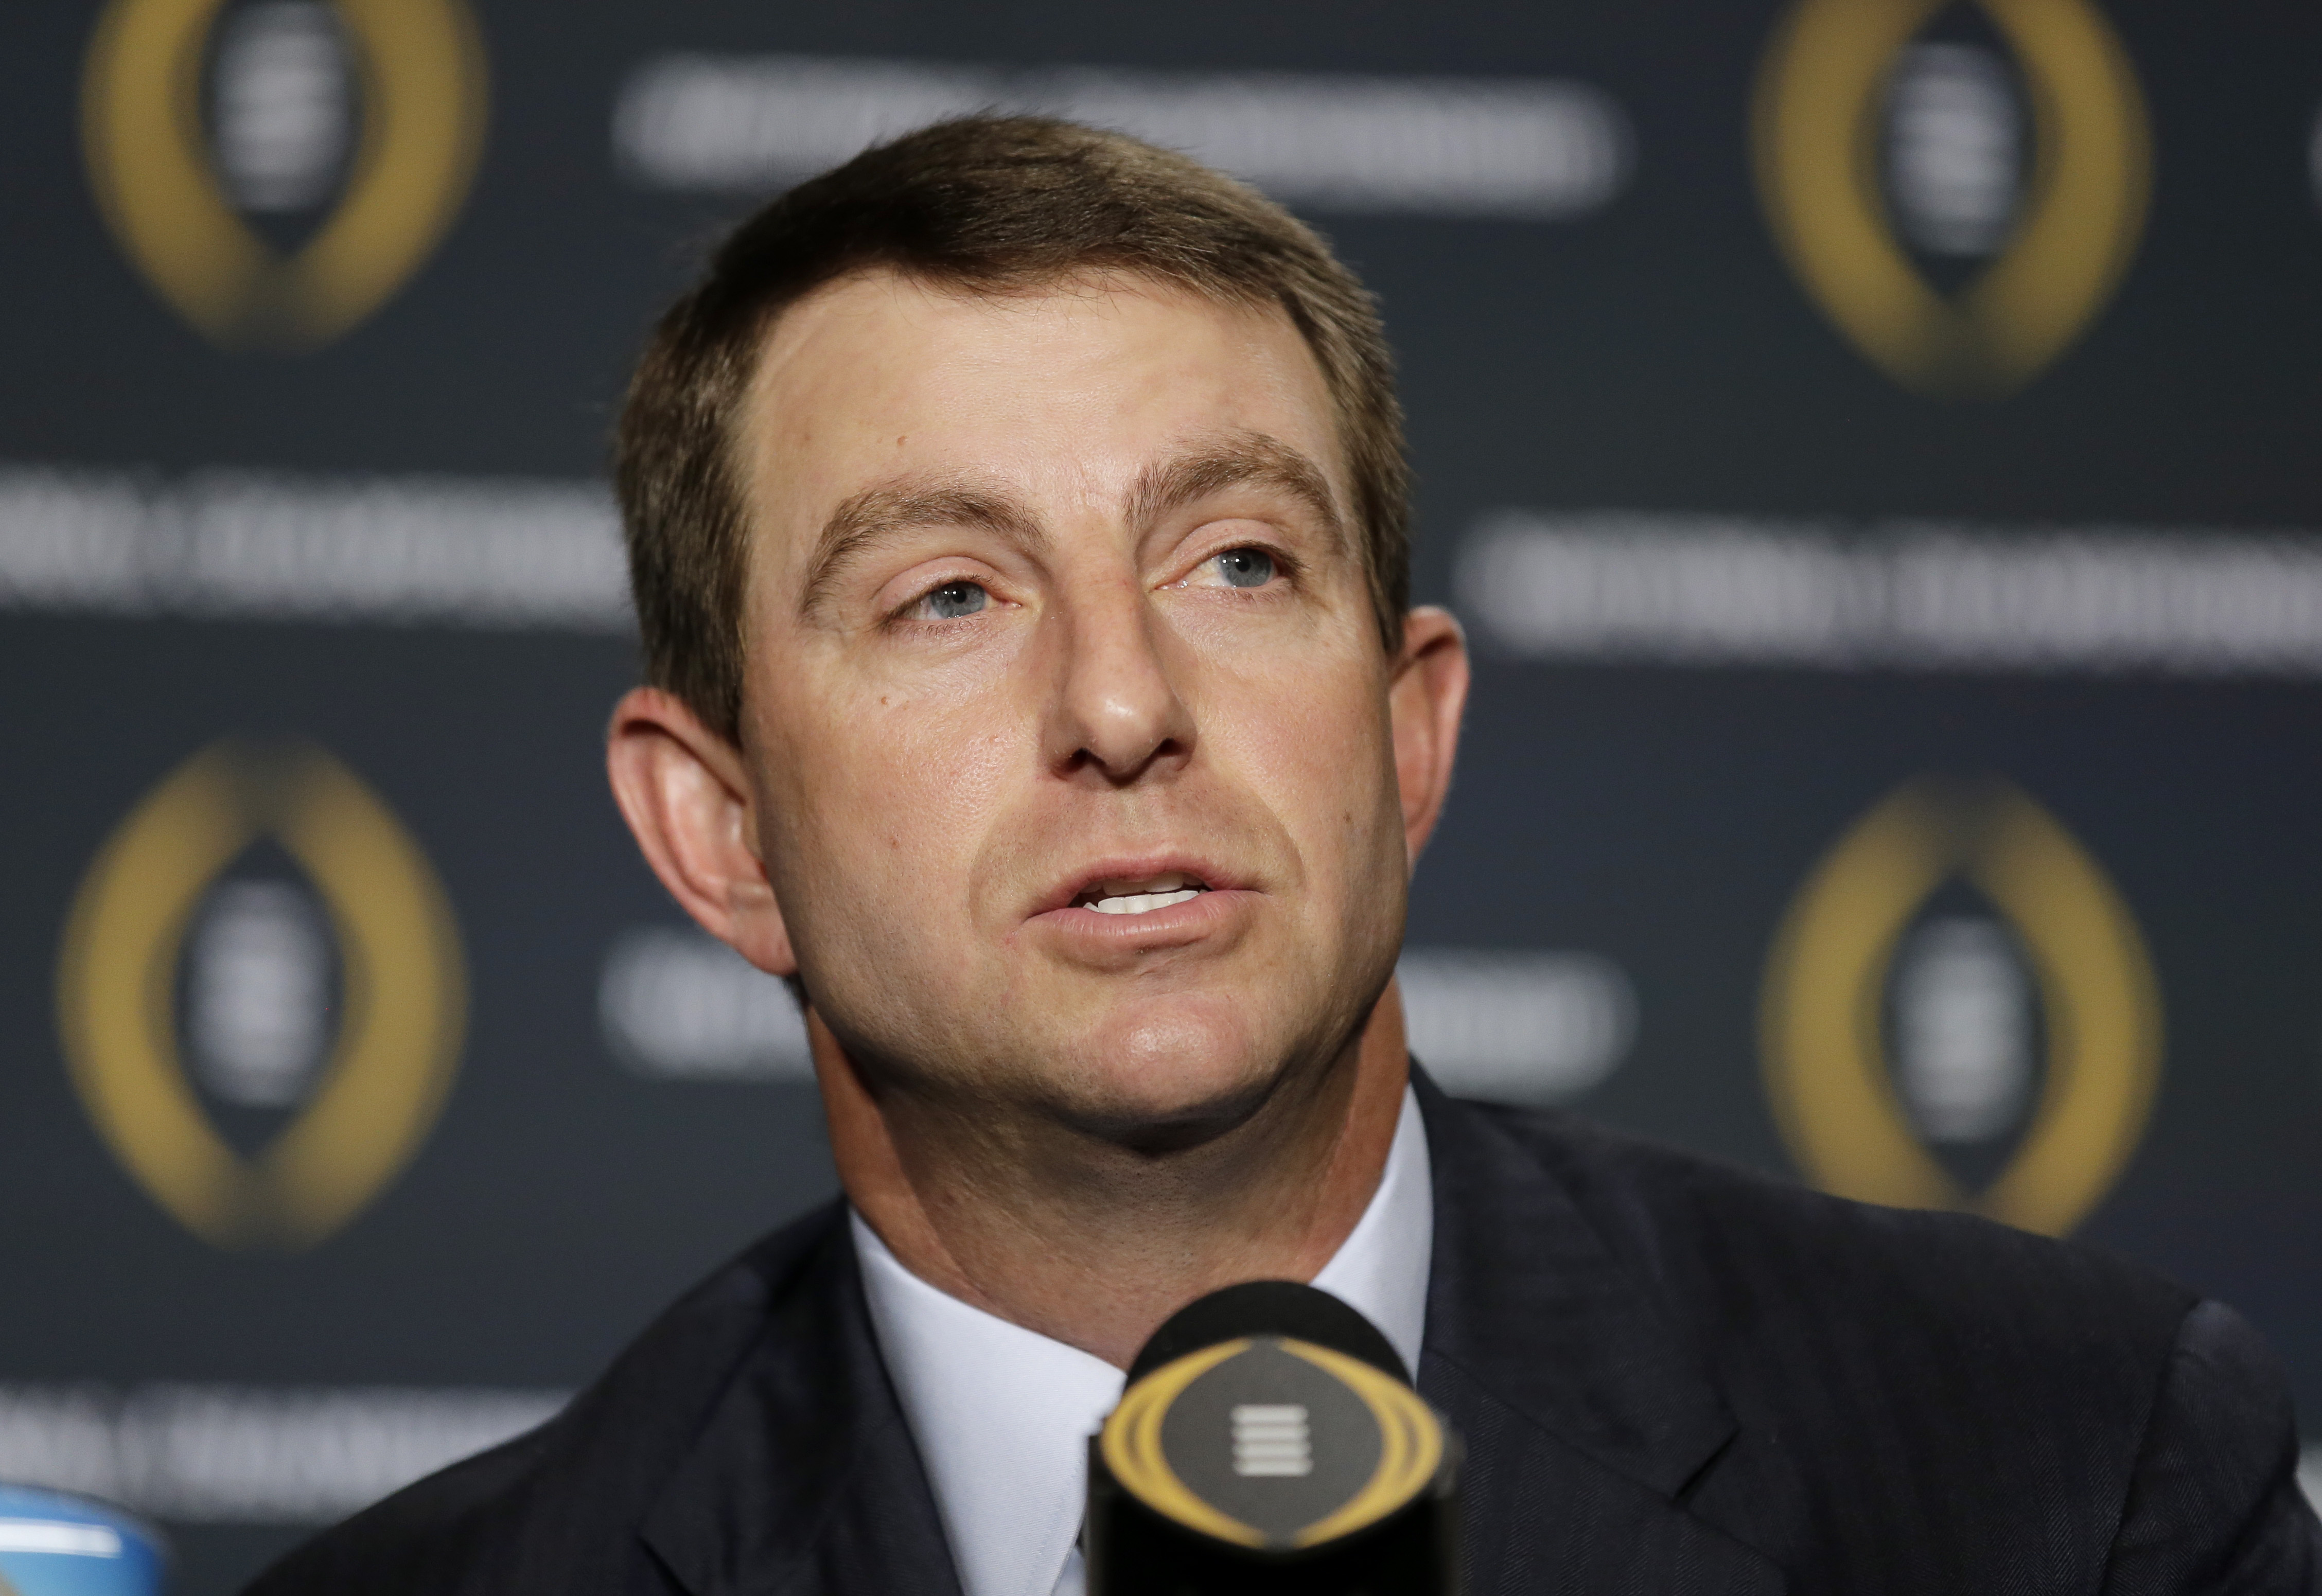 Clemson head coach Dabo Swinney speaks during a news conference for the NCAA college football playoff championship game Sunday, Jan. 10, 2016, in Glendale, Ariz. (AP Photo/Chris Carlson)